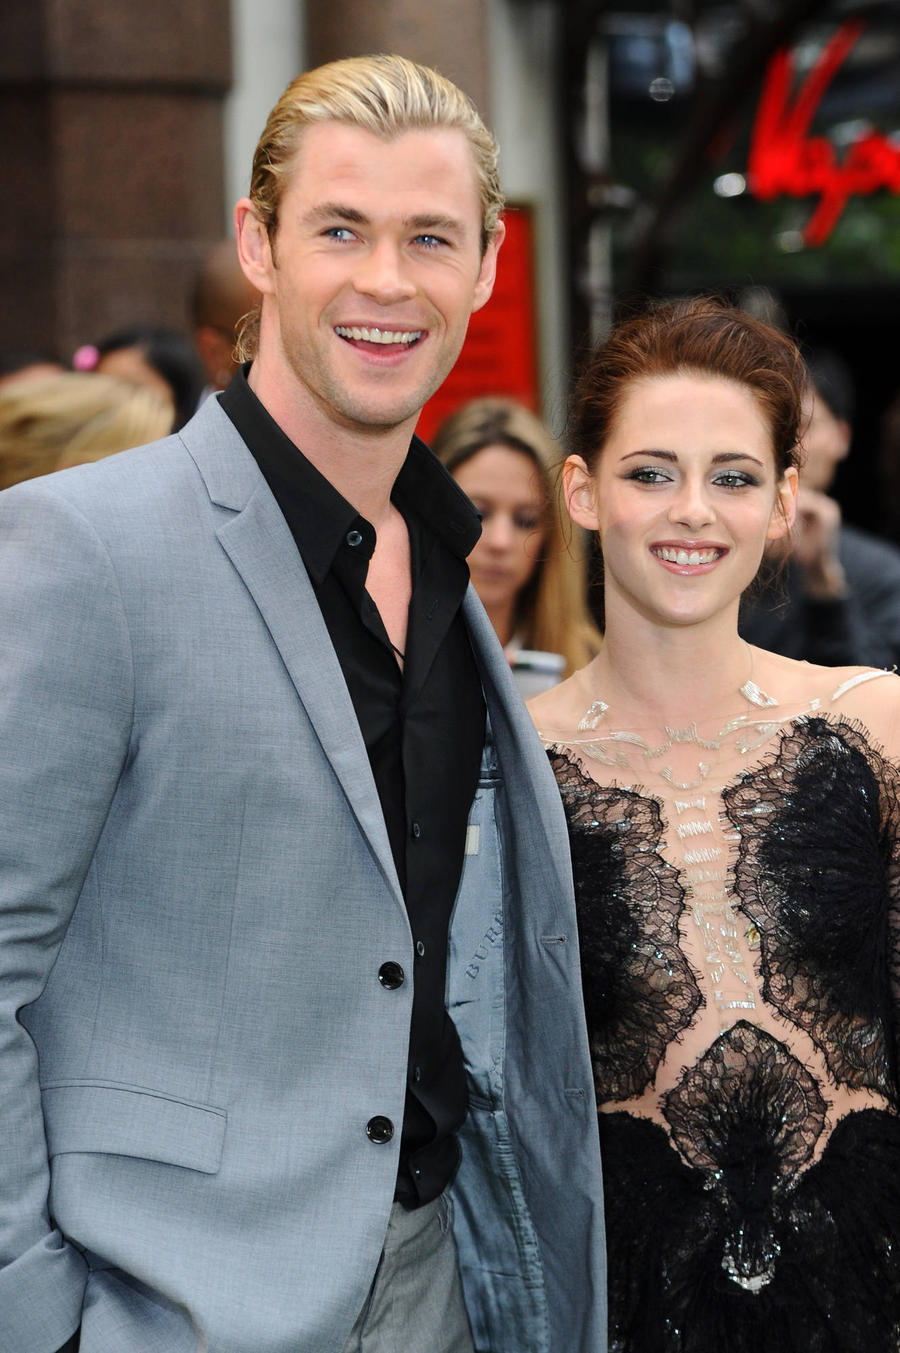 kristen stewart biography dating For years, kristen stewart resolutely tried to keep her private life out of the now , though, the actress says that she has decided to share her when i was dating rob, the public were the enemy – and that is no way to live.